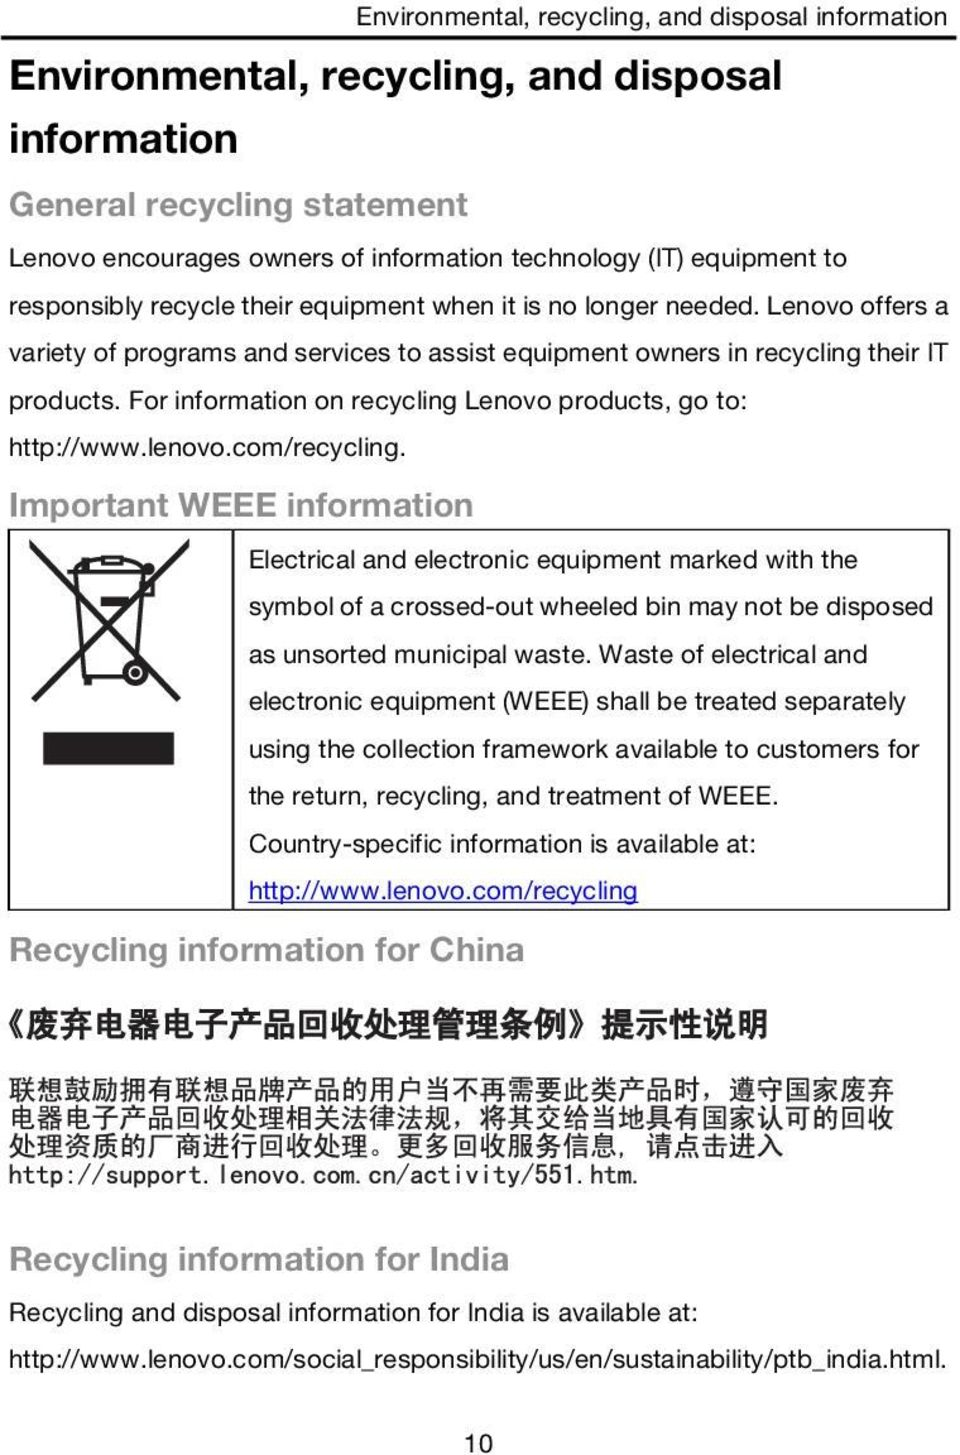 For information on recycling Lenovo products, go to: http://www.lenovo.com/recycling.